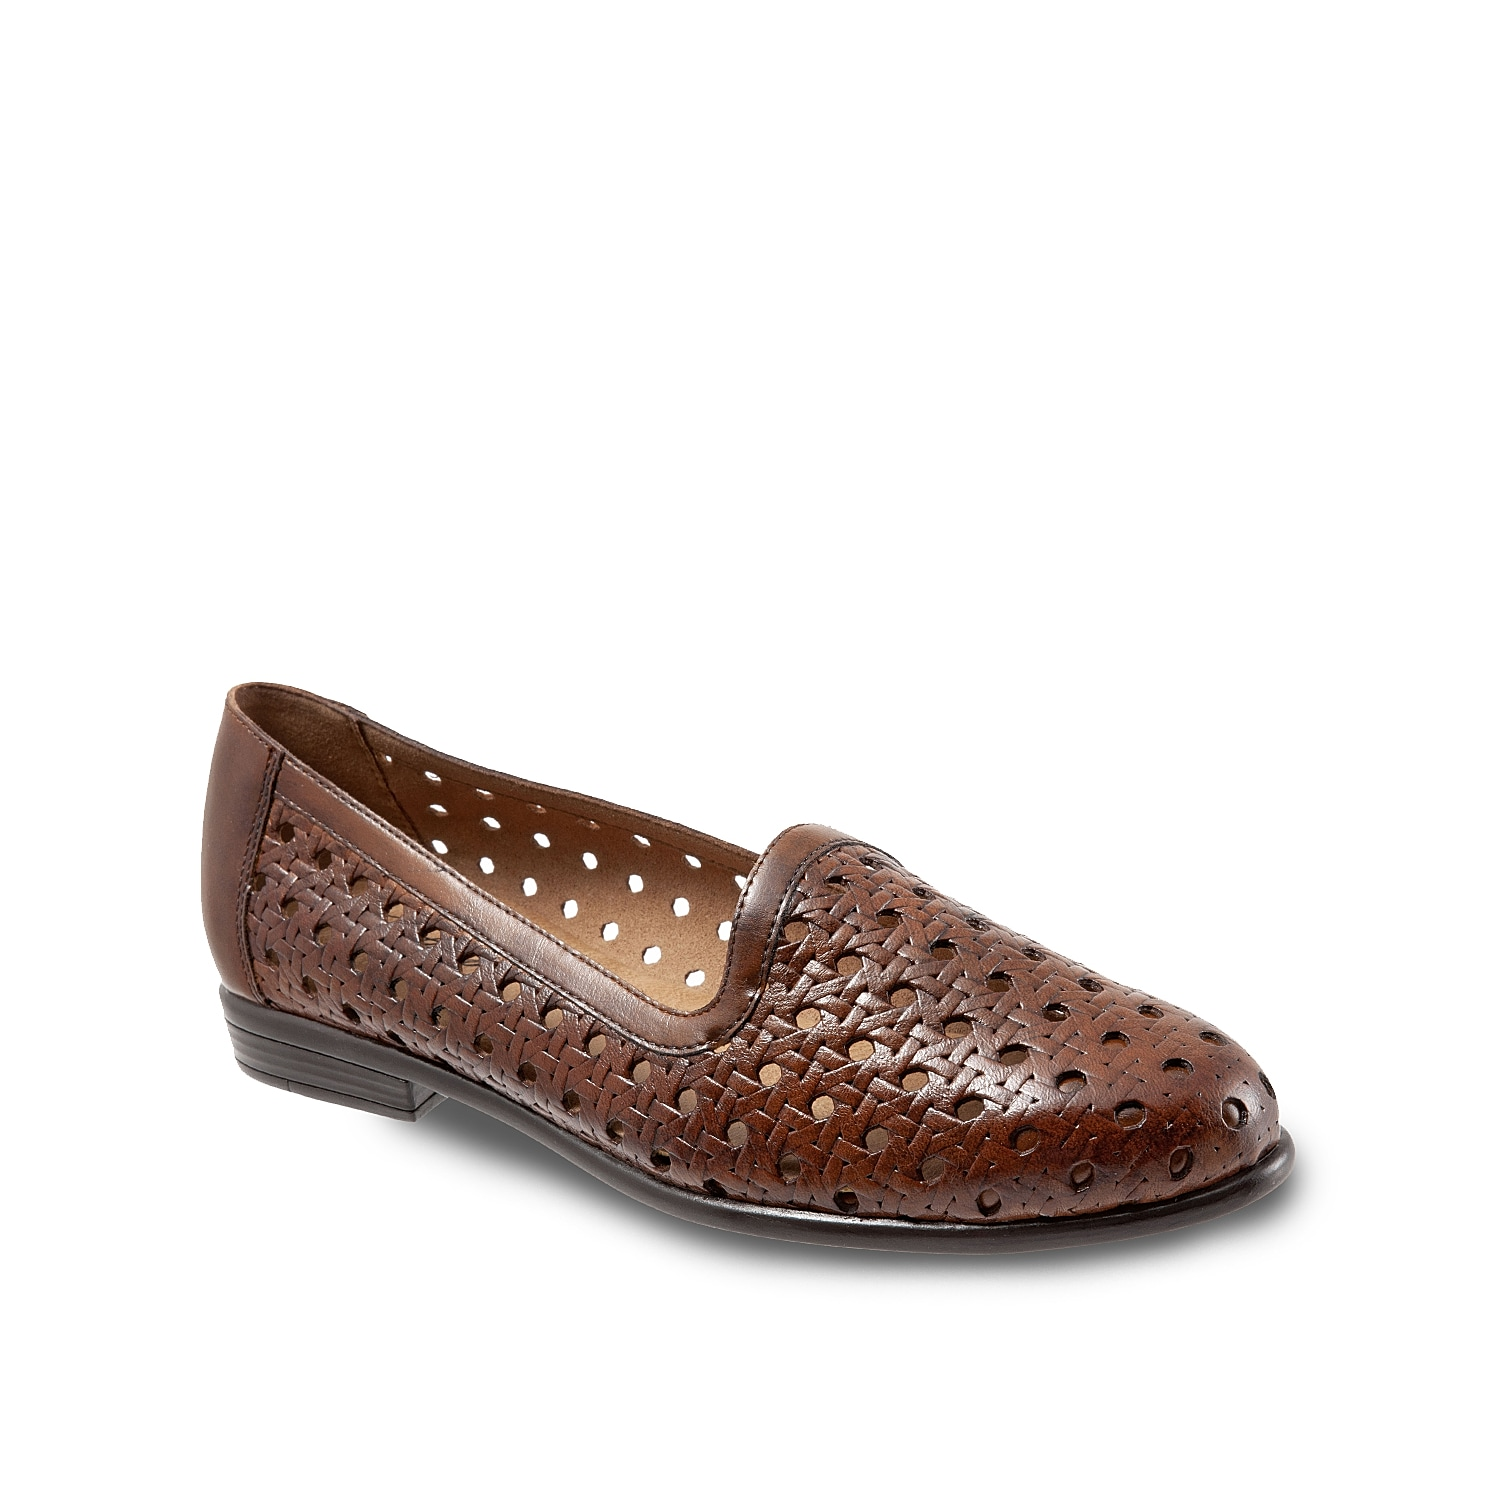 Feel the breeze with the Liz open weave loafer from Trotters. A cushioned footbed and soft lining will keep you comfortable during the whole warm weather season!